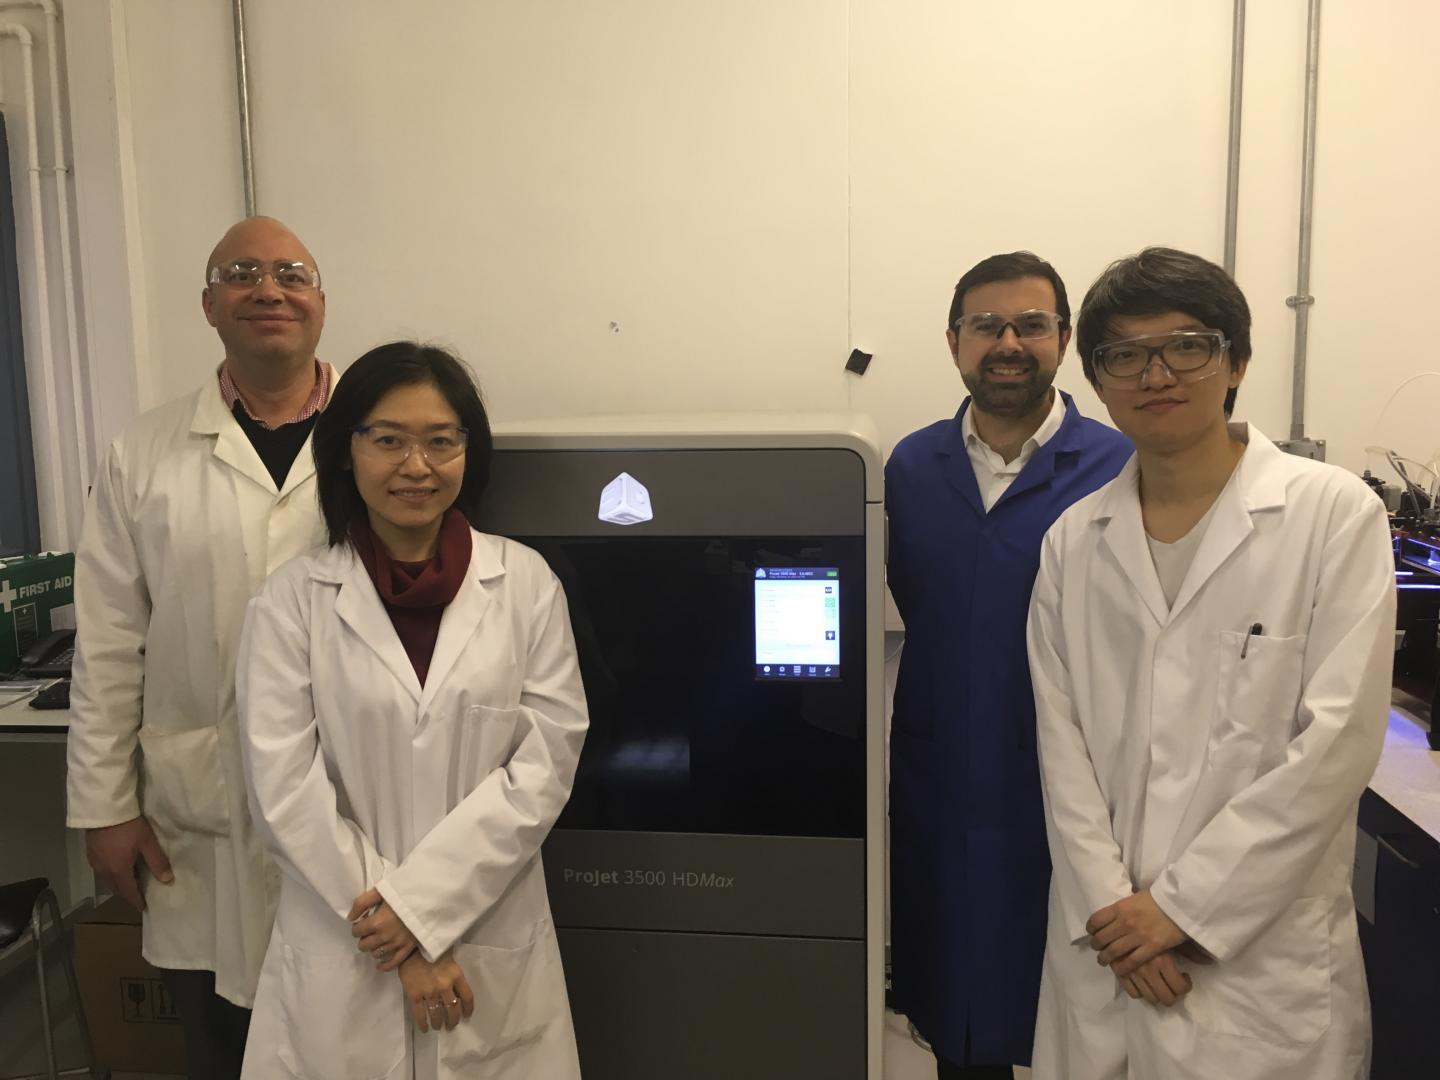 Dr Darrell Patterson and team, University of Bath